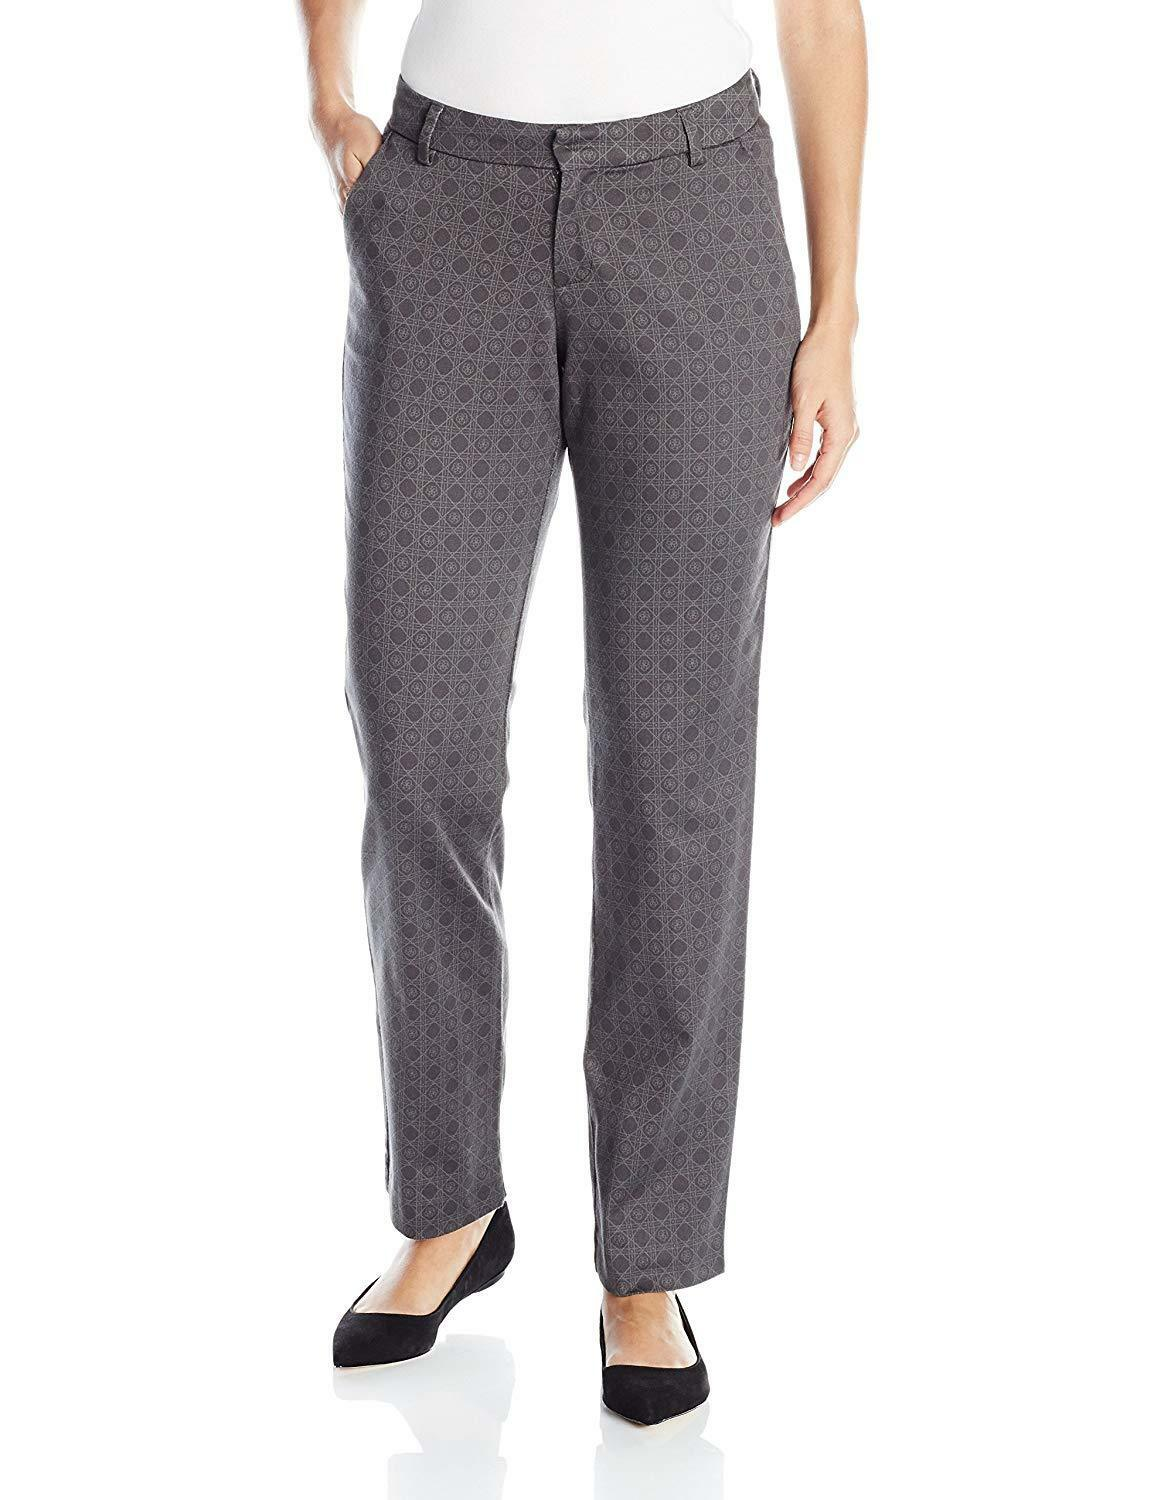 Lee Womens Collection LEE Modern Series Lita Curvy Fit Straight Leg Pant